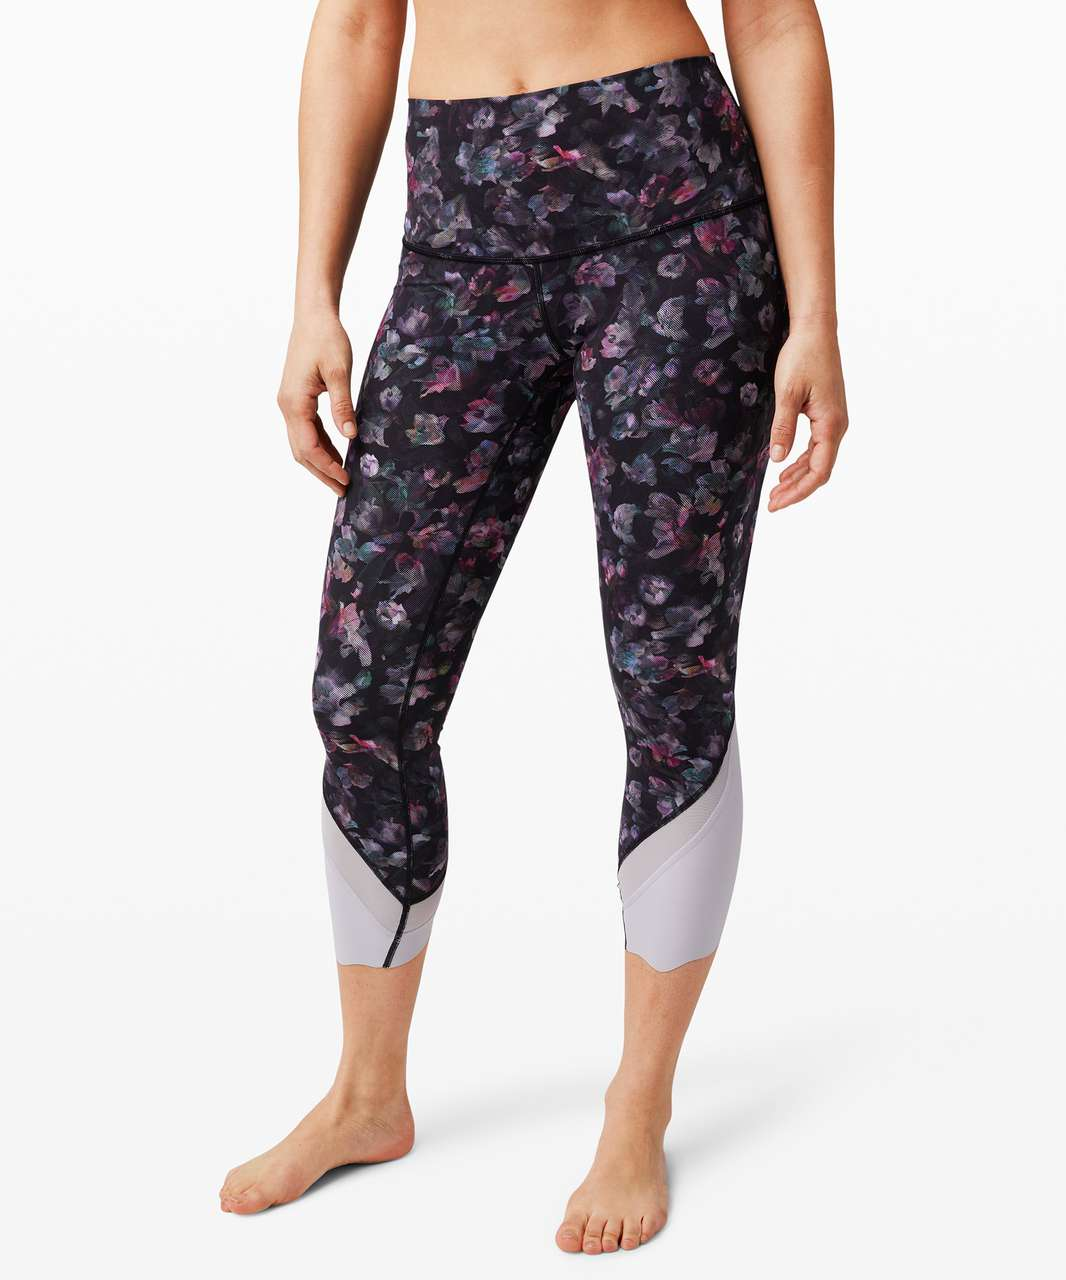 "Lululemon Wunder Under Crop High-Rise *Roll Down Scallop Full-On Luxtreme 23"" - Activate Floral Multi"